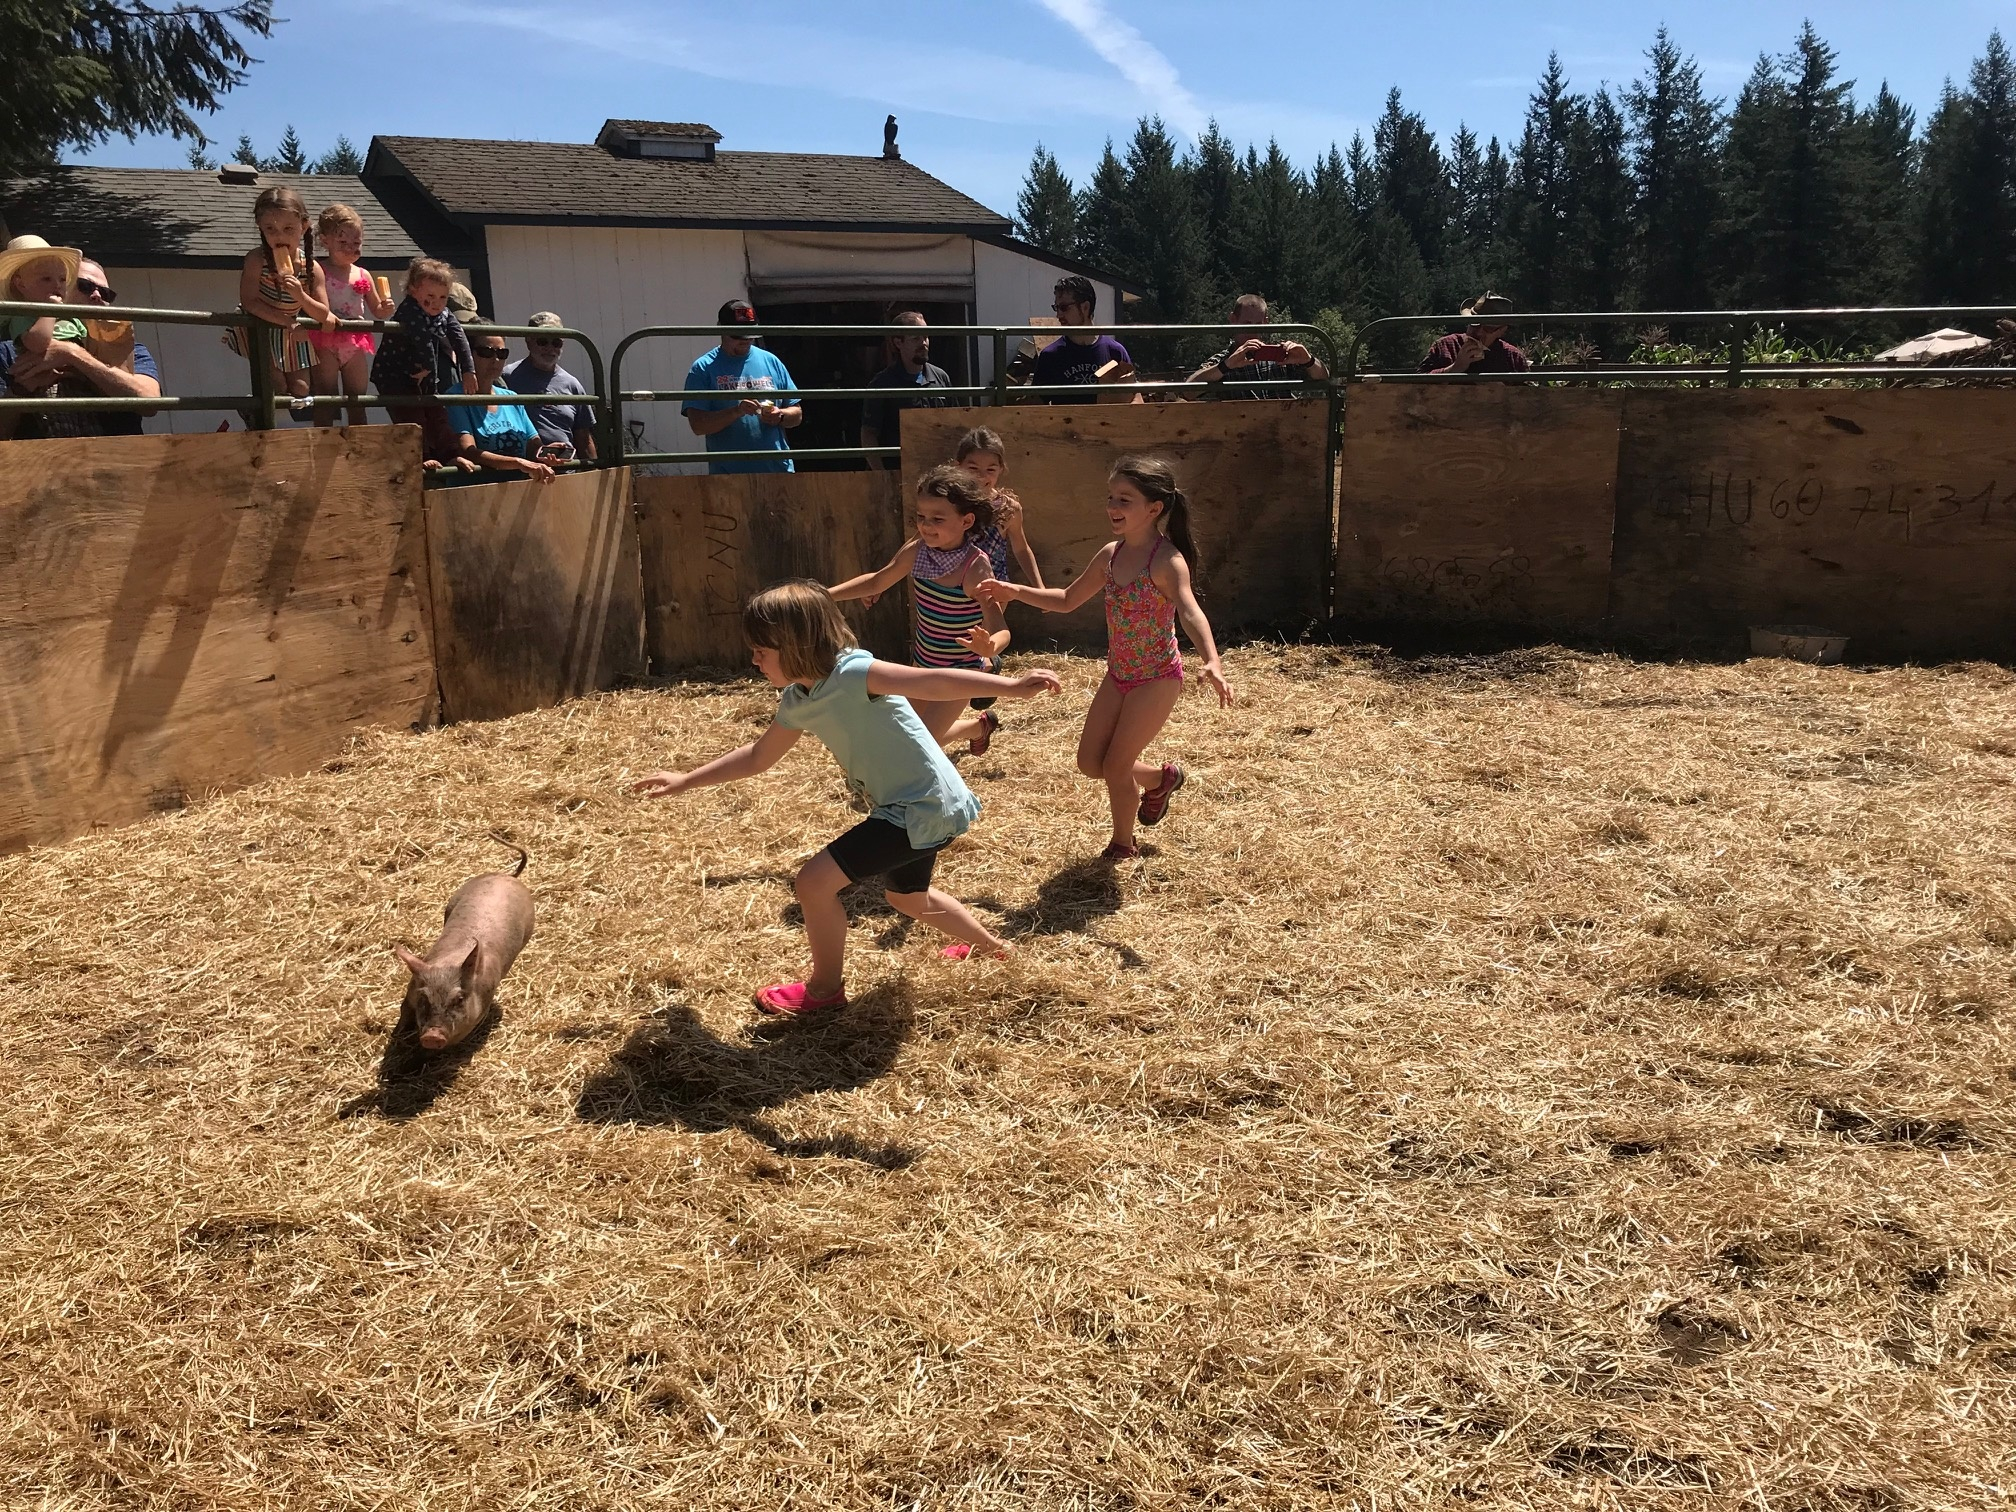 Children chasing small pigs for a fun afternoon activity.